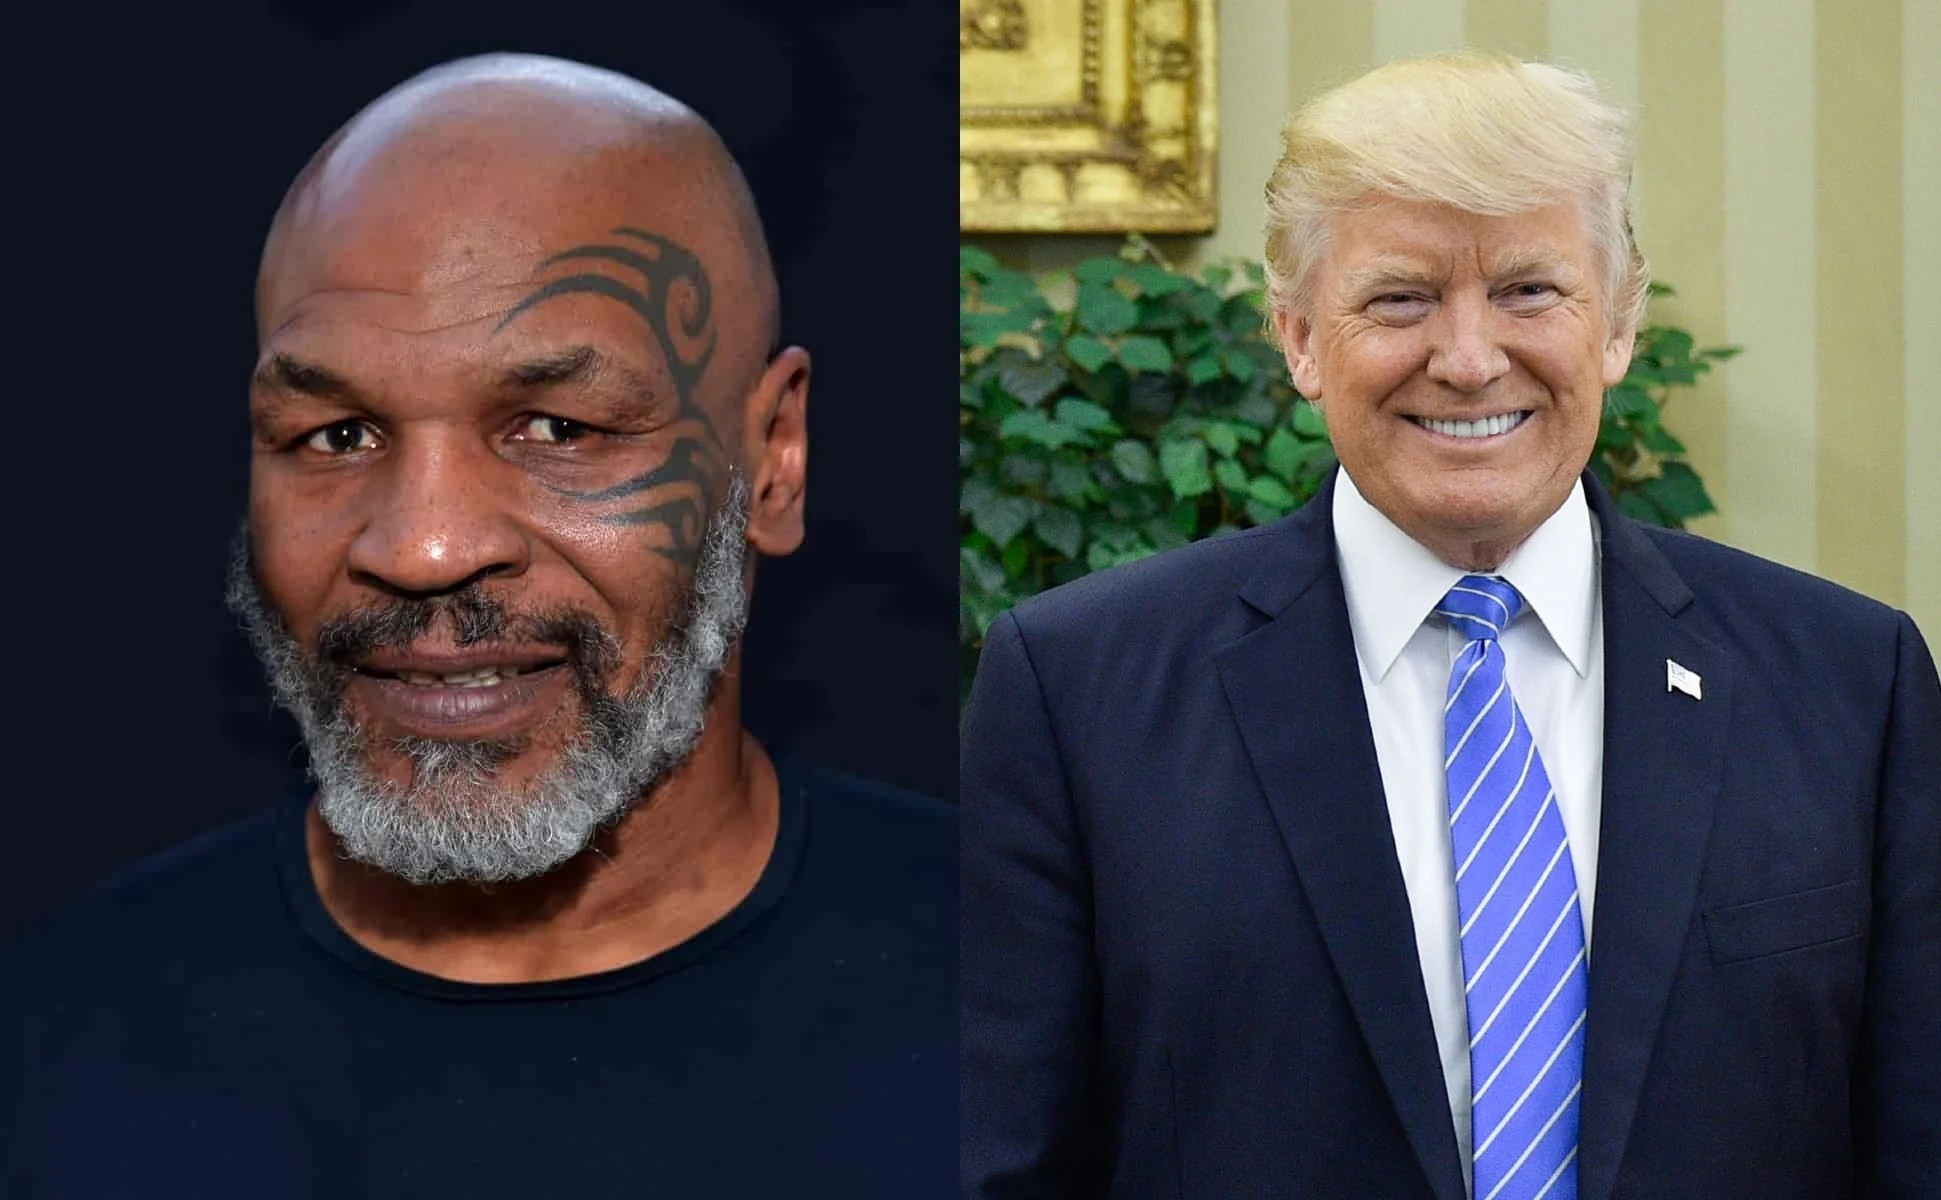 Mike Tyson Comes Clean About Trump Ahead Of 2020 Elections